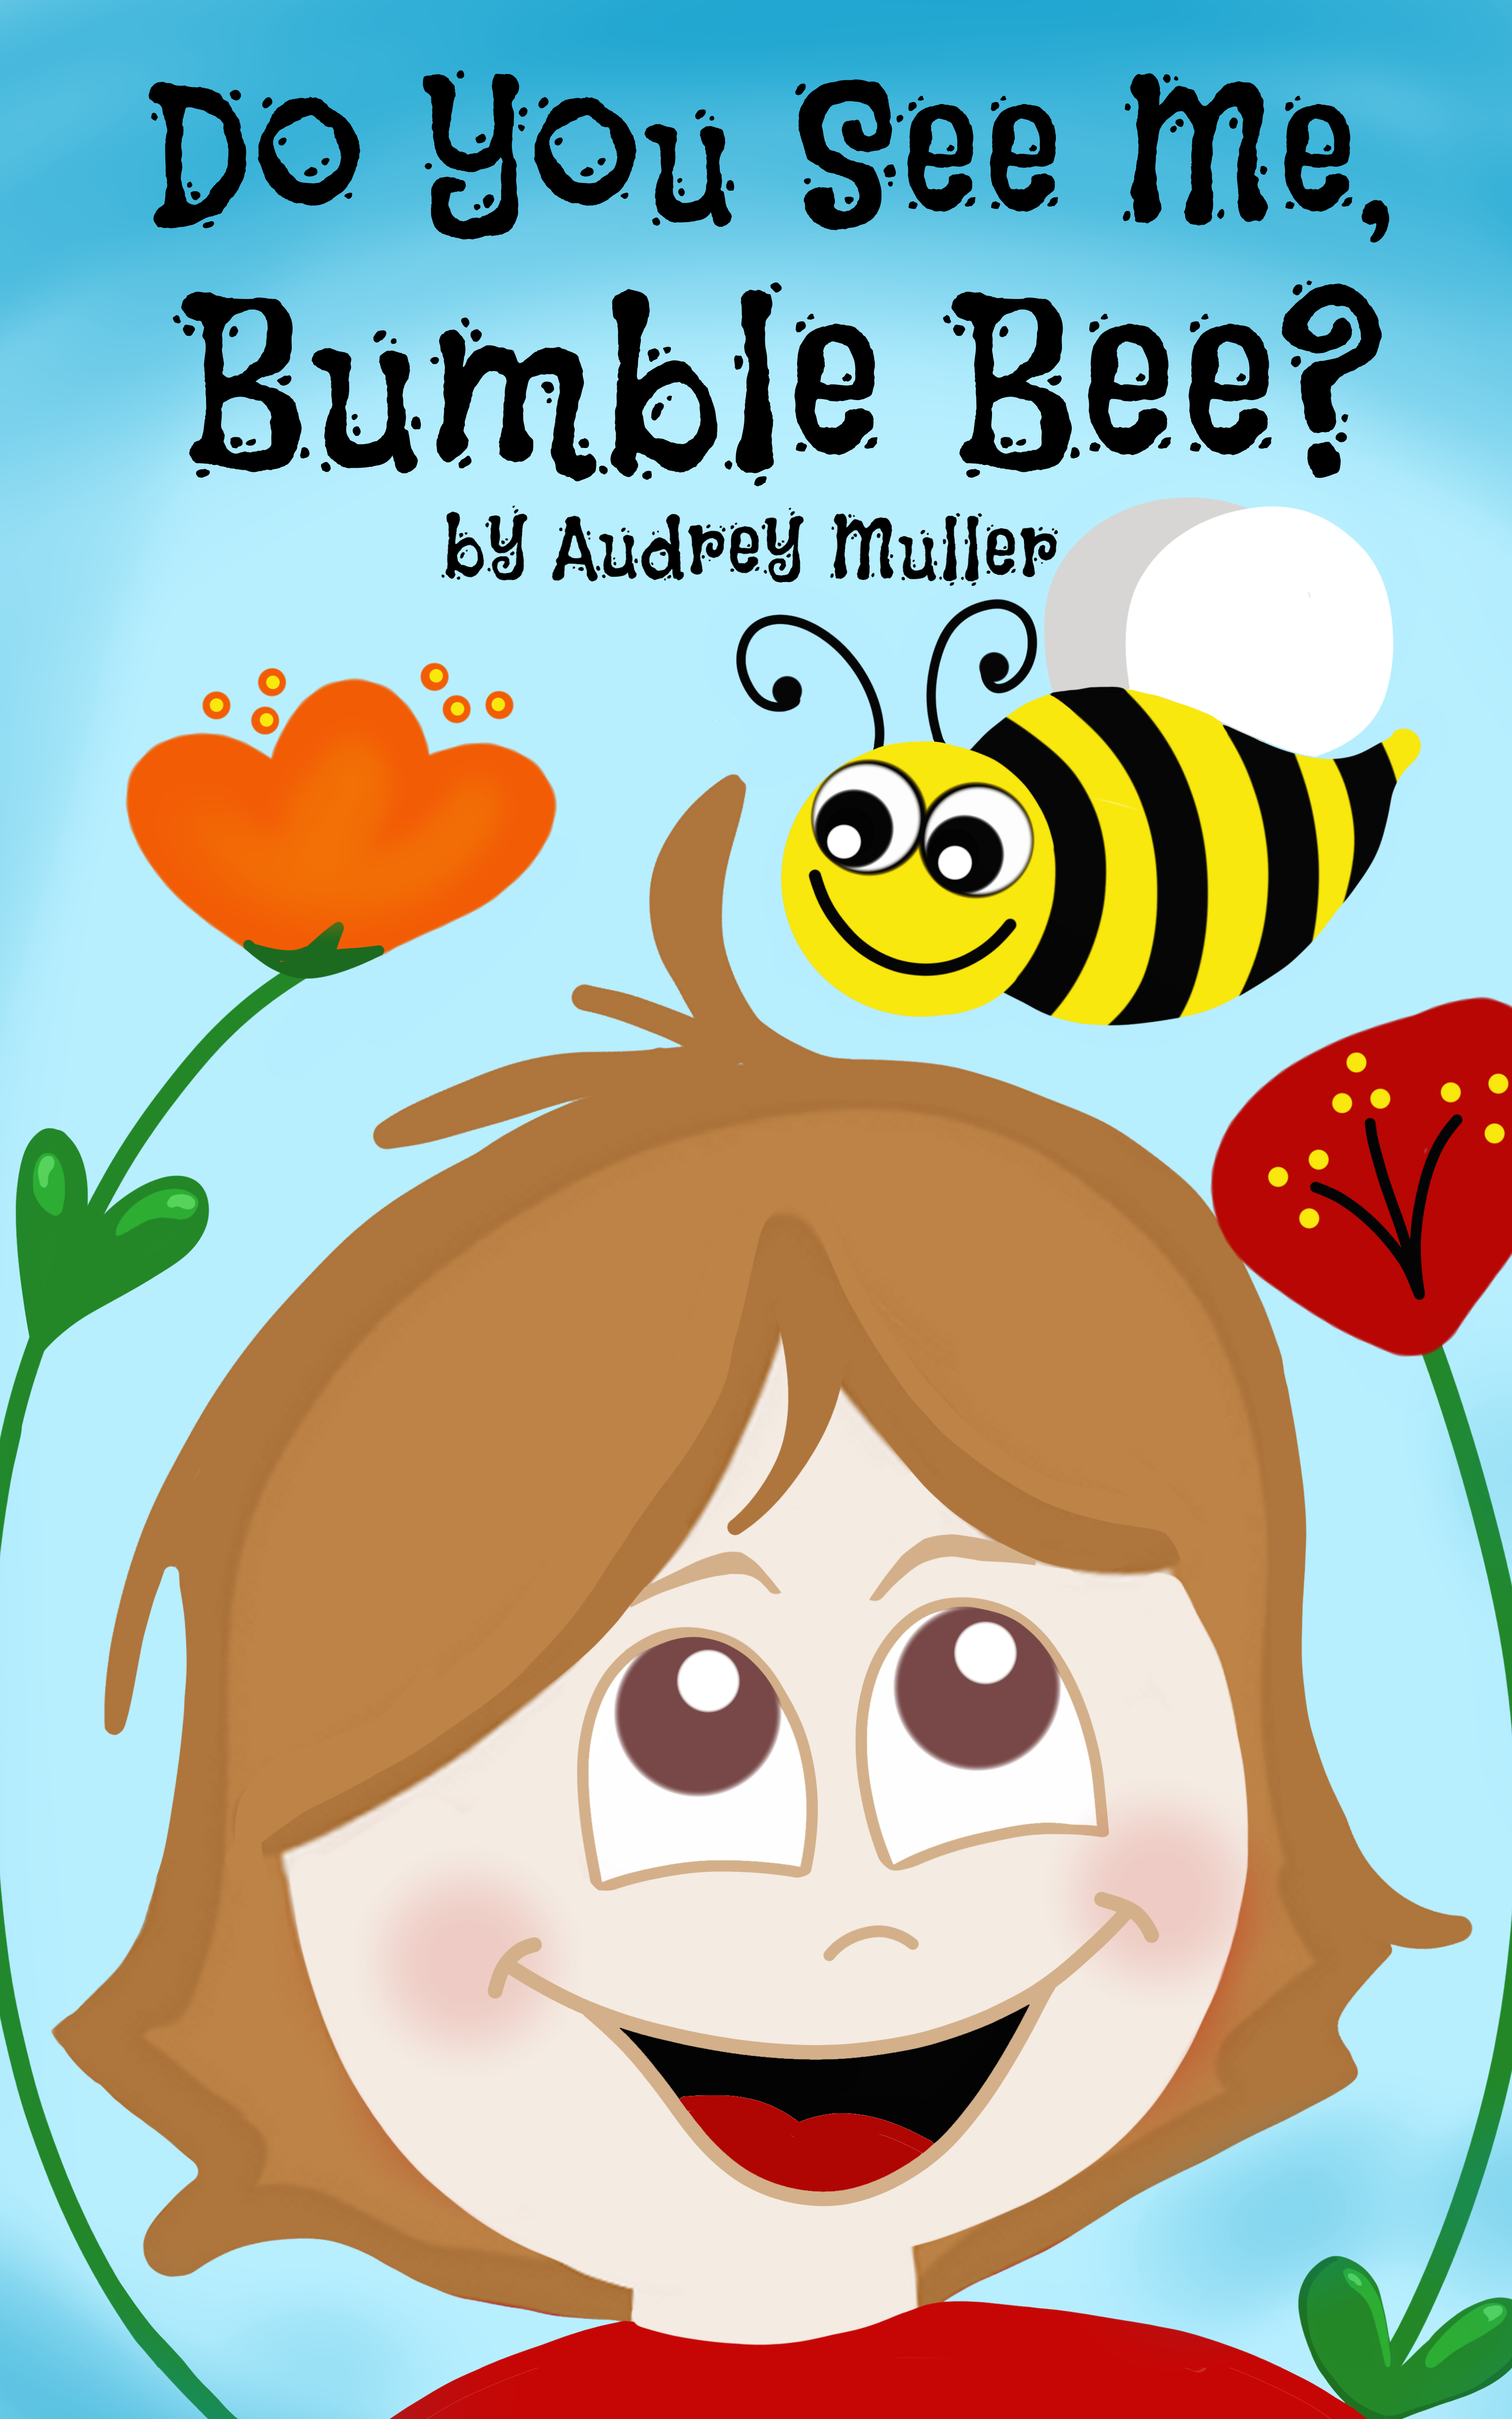 Do You See Me, Bumble Bee? Audrey Muller